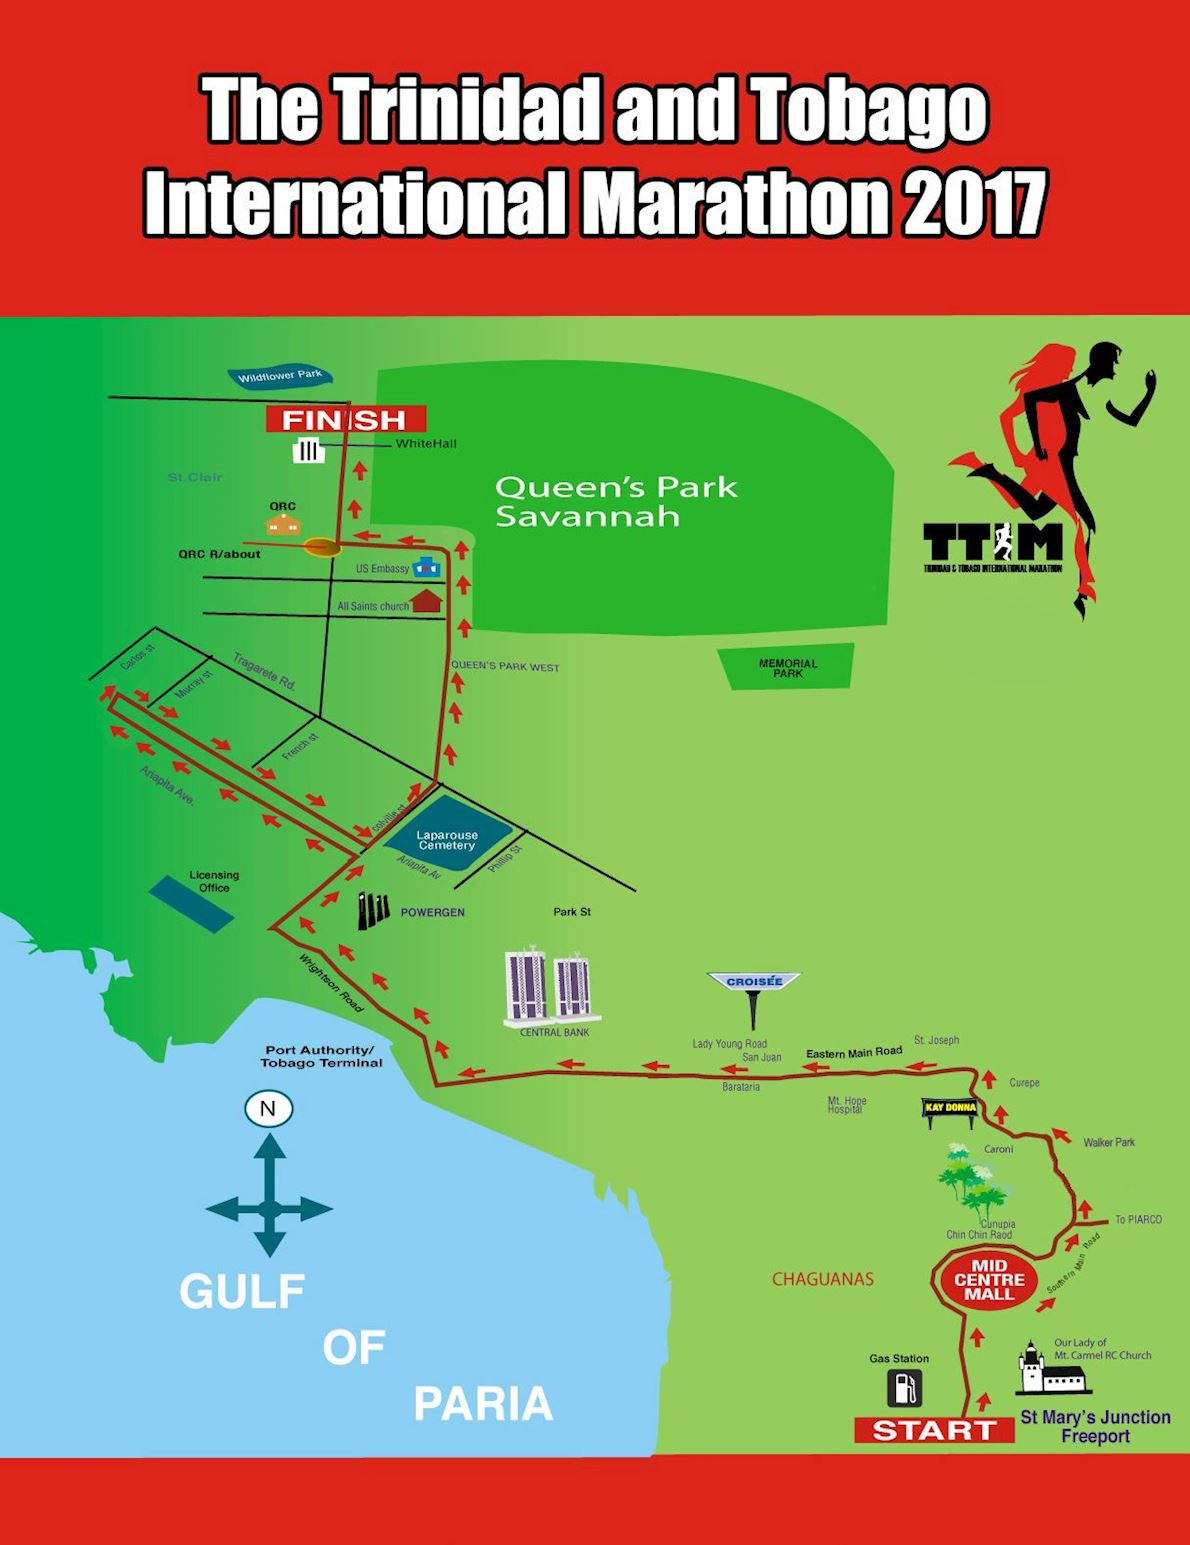 Trinidad and Tobago Marathon 路线图